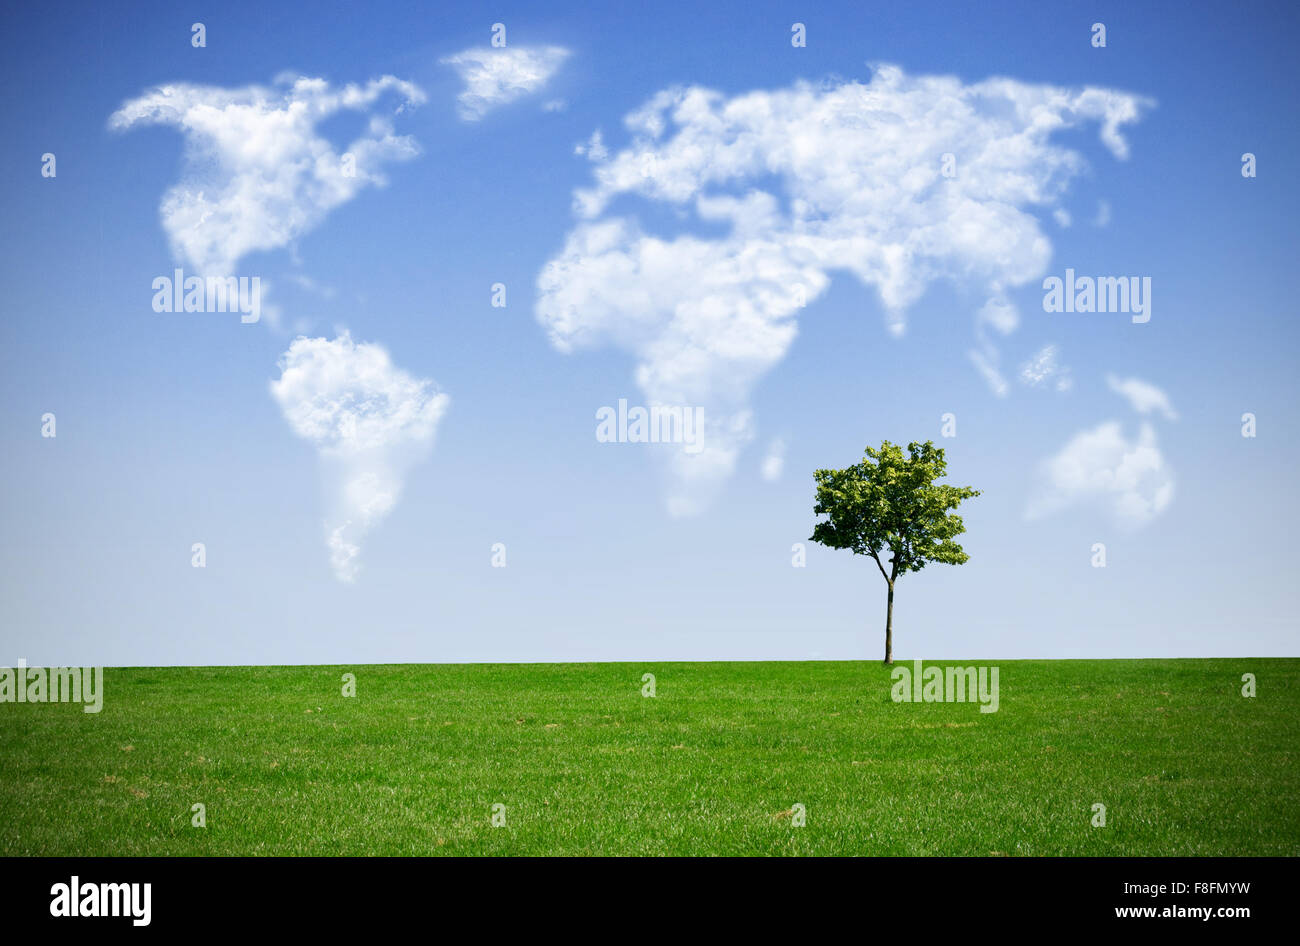 Clouds in the shape of a world map against blue sky - Stock Image